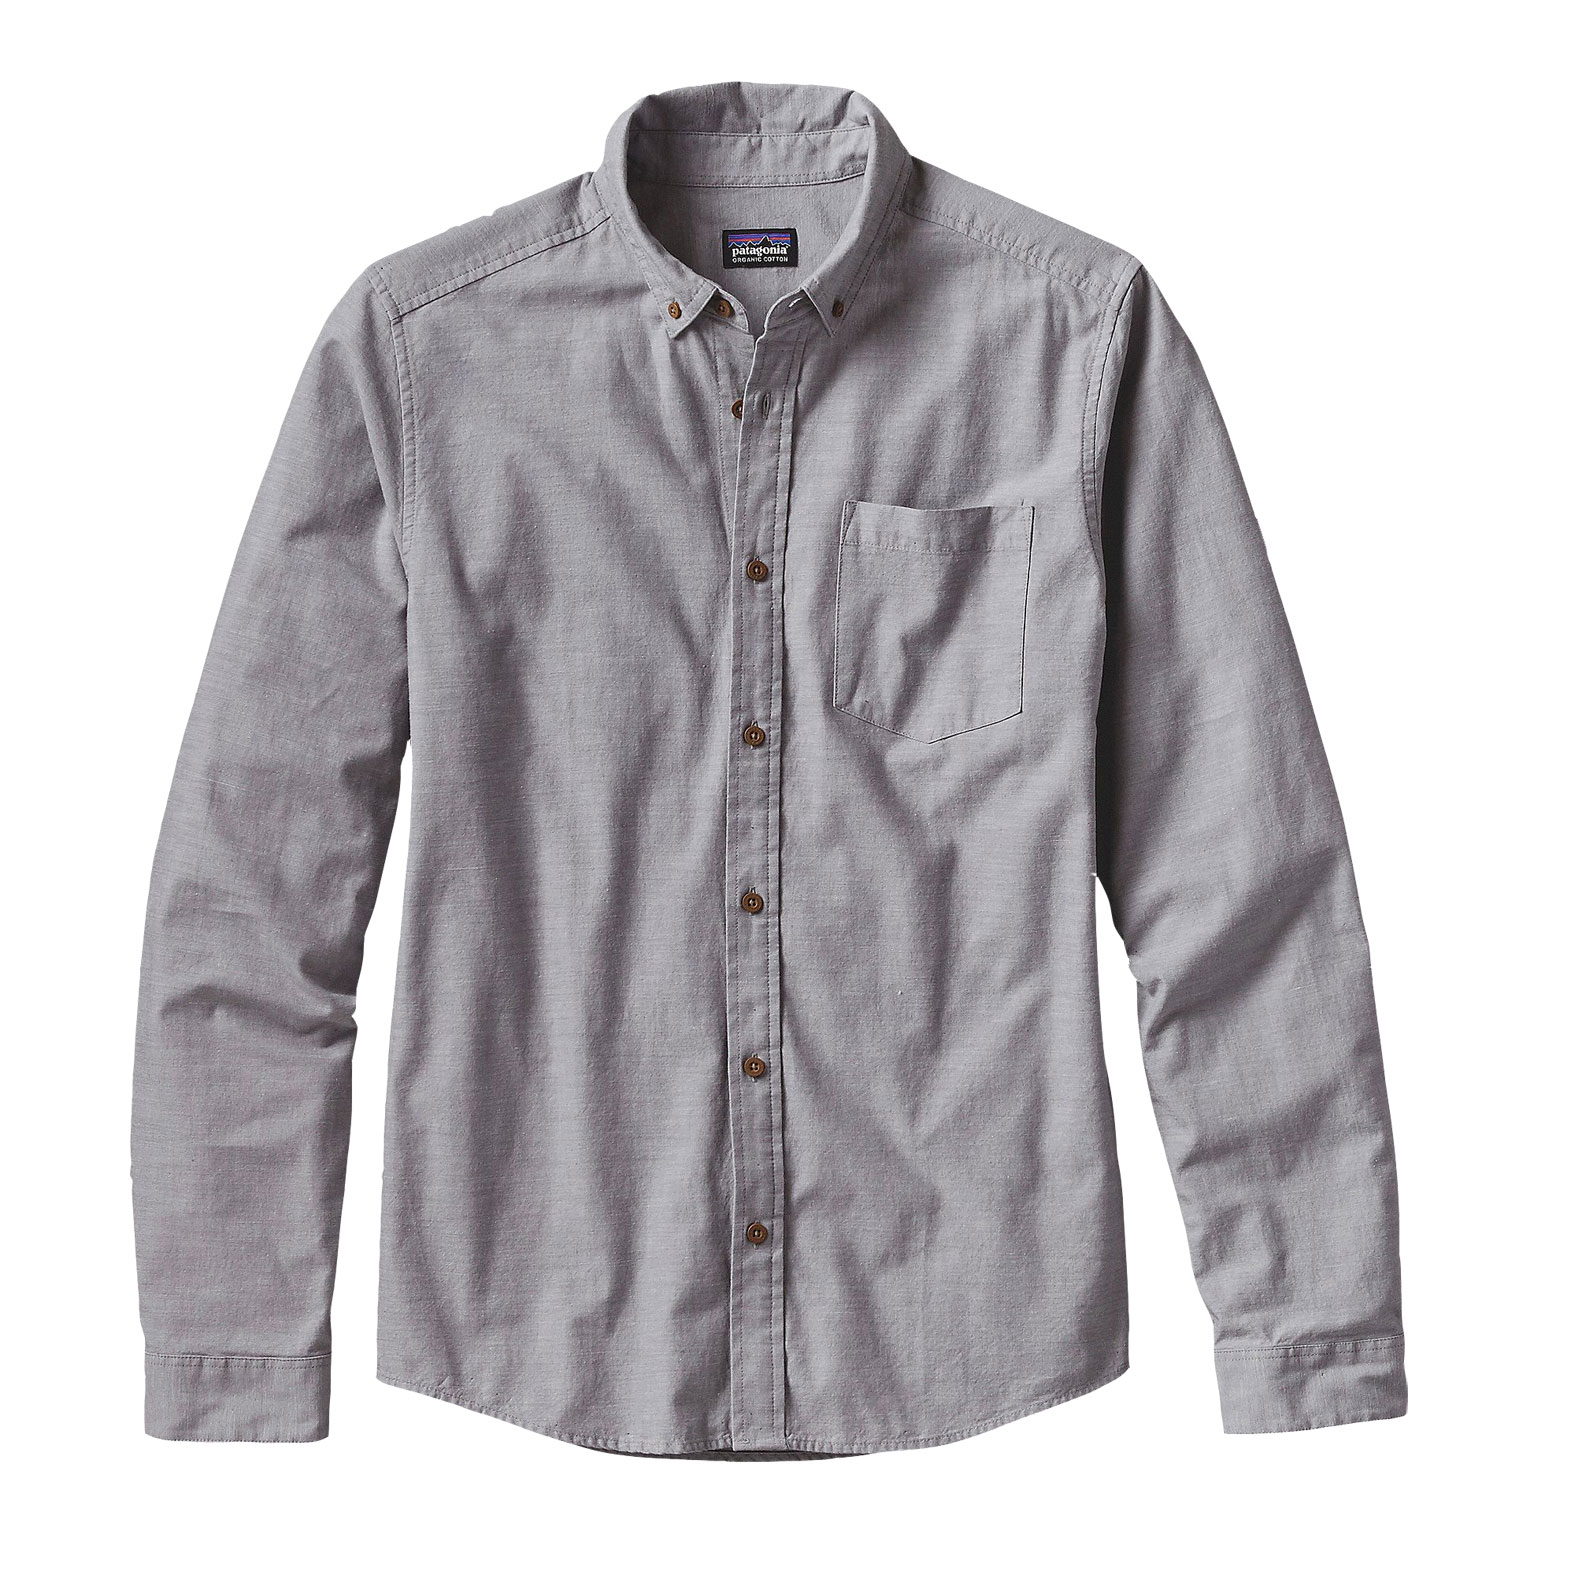 Patagonia Mens Long-Sleeved Bluffside Shirt